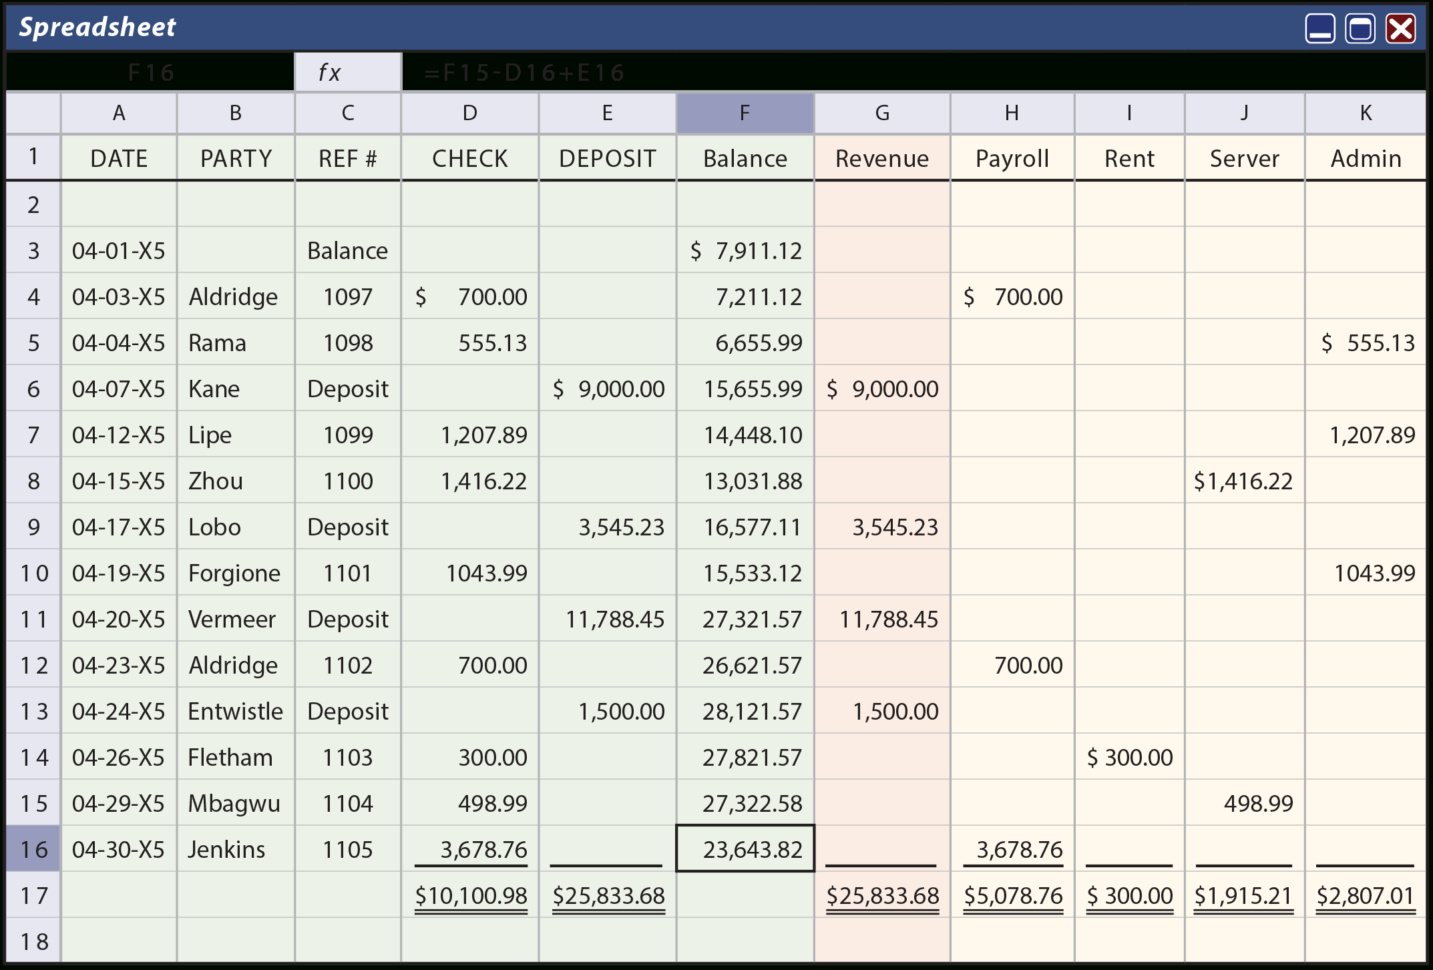 Expense Accrual Spreadsheet Template For Accrual Versus Cashbasis Accounting  Principlesofaccounting